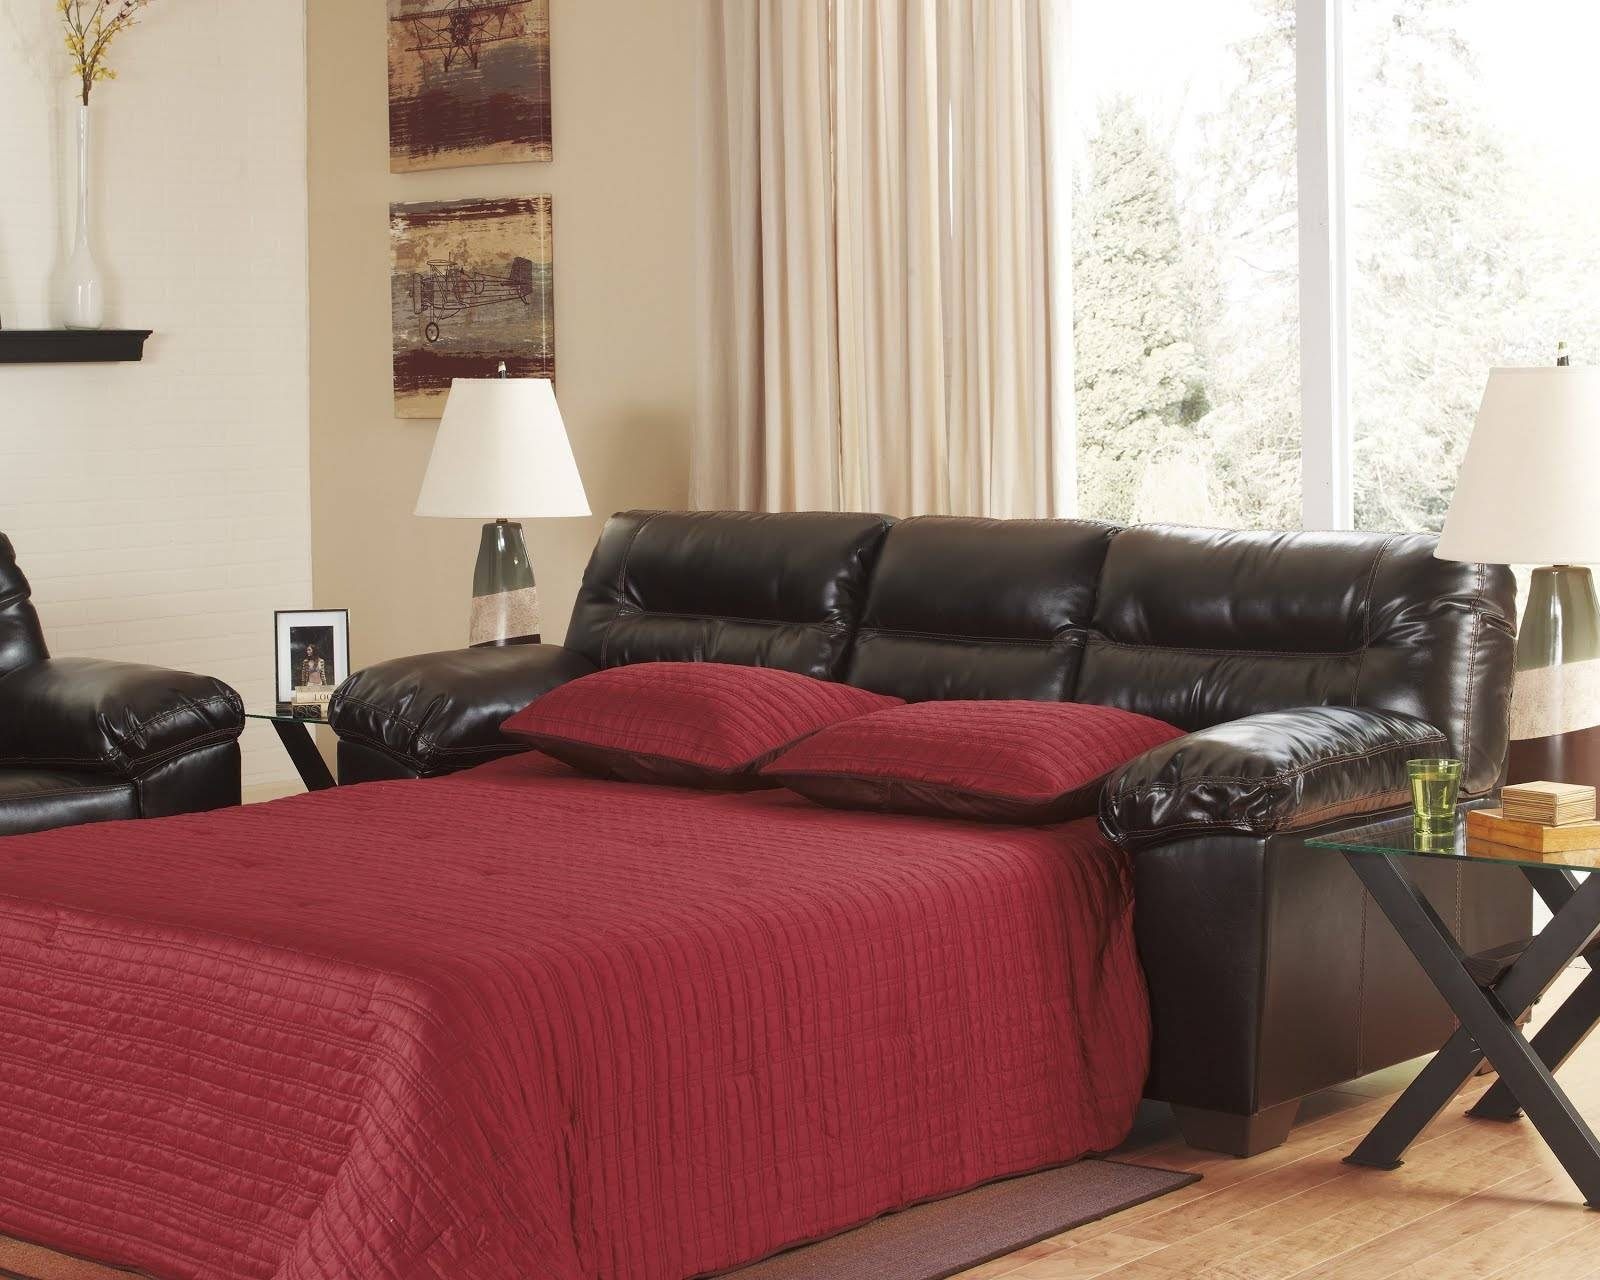 Black Sleeper Sofa.diamond Black Faux Leather Sleeper Sofa with regard to Red Sleeper Sofa (Image 3 of 30)